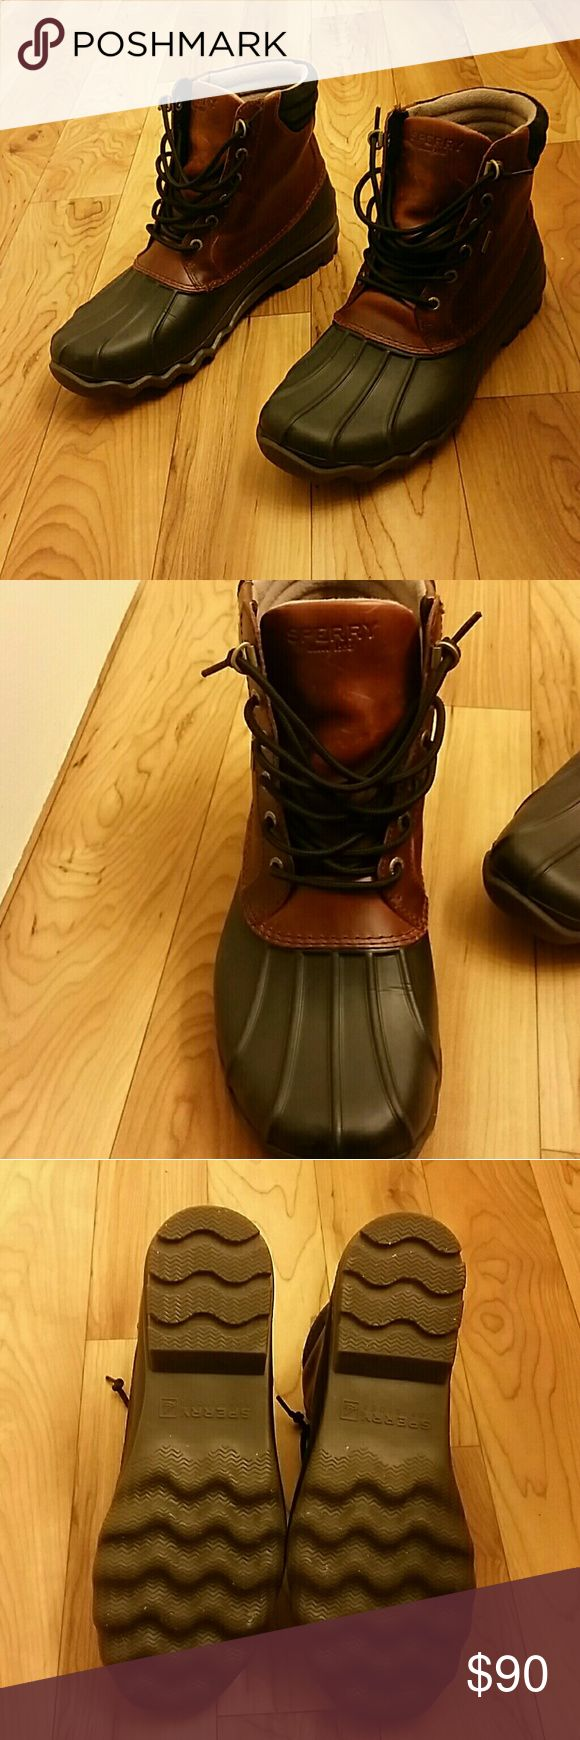 Sperry Duck Boots Men's Sperry duck boots. In great condition. Some scratches throughout the shoe as shown in picture 4. Sperry Shoes Boots